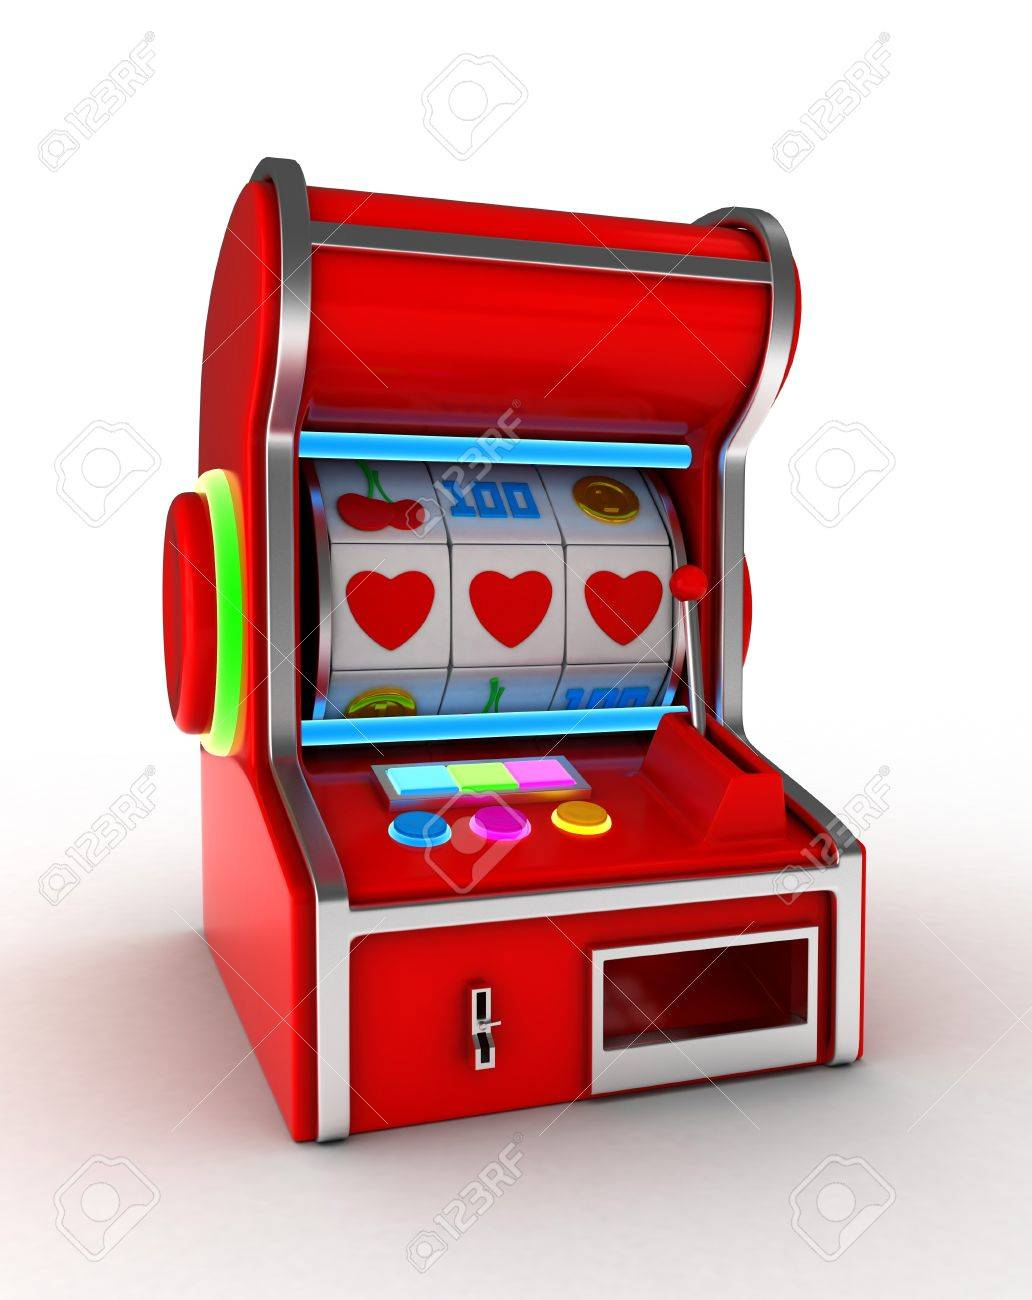 Illustration of a Slot Machine Displaying a Combination of Three Hearts Stock Photo - 8756731